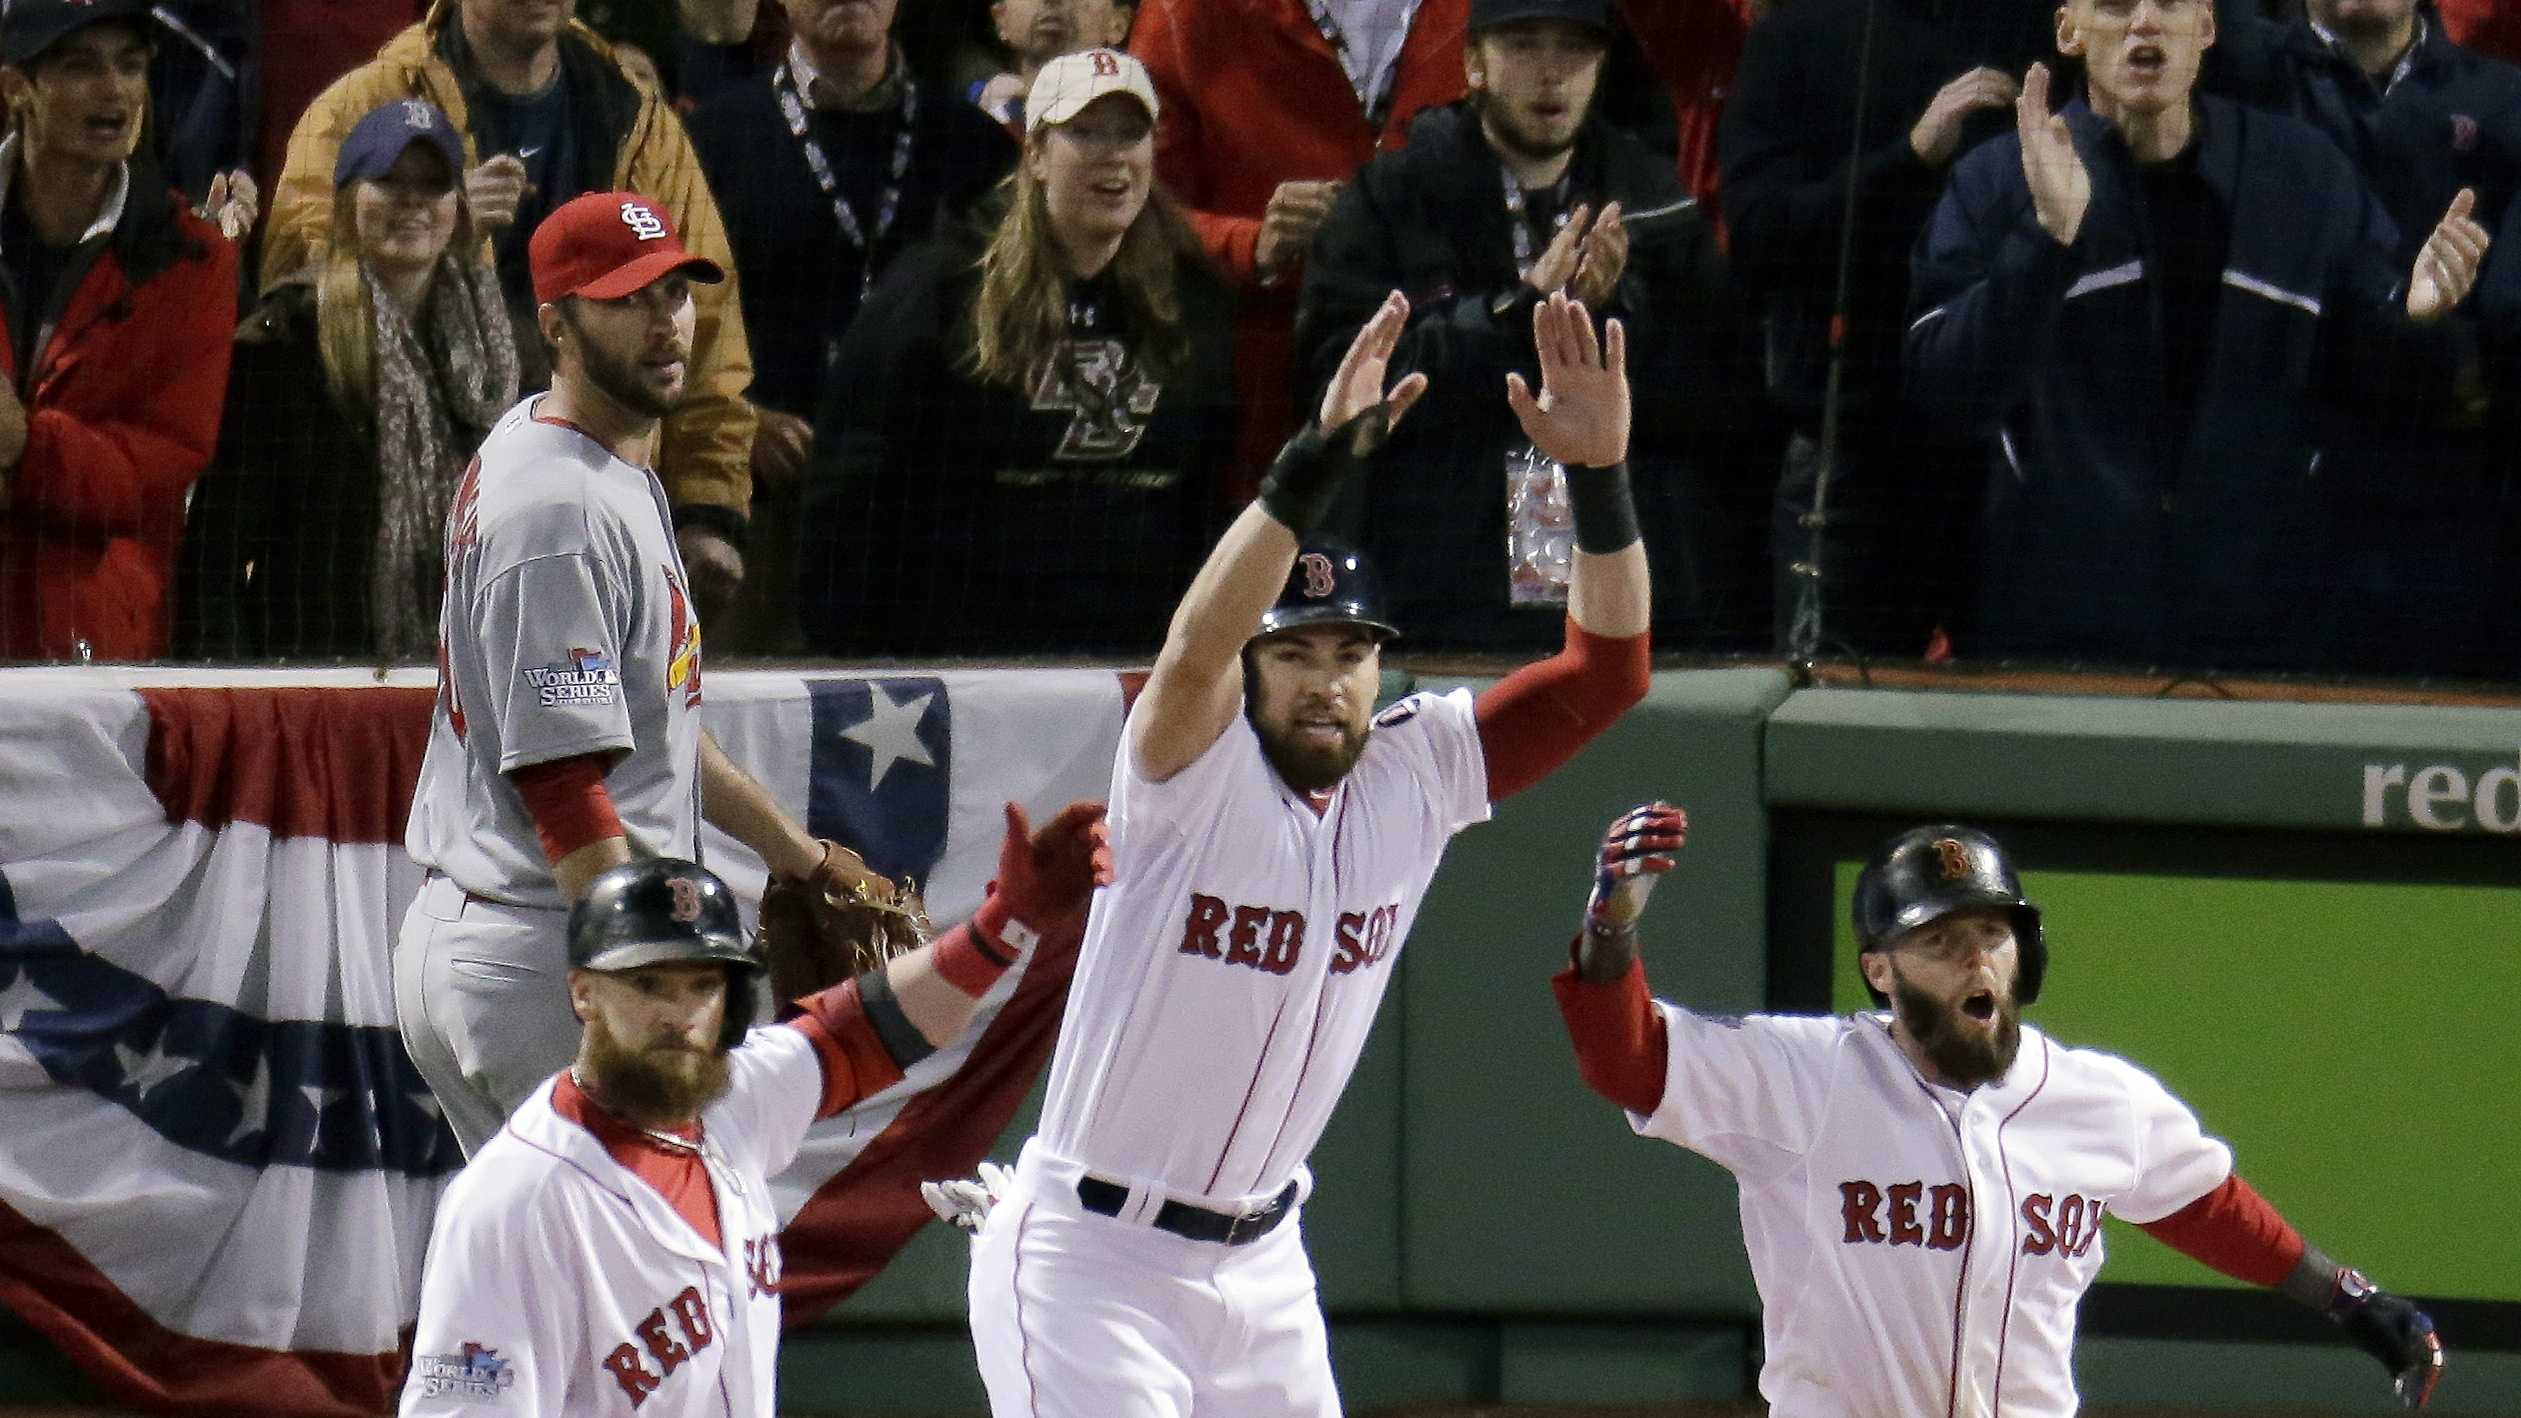 St. Louis Cardinals starting pitcher Adam Wainwright, left, rear watches as Boston Red Sox's Jonny Gomes, left, Jacoby Ellsbury, center, and Dustin Pedroia, celebrate a three-run scoring double by Mike Napoli during the first inning of Game 1 of baseball's World Series Wednesday, Oct. 23, 2013, in Boston.